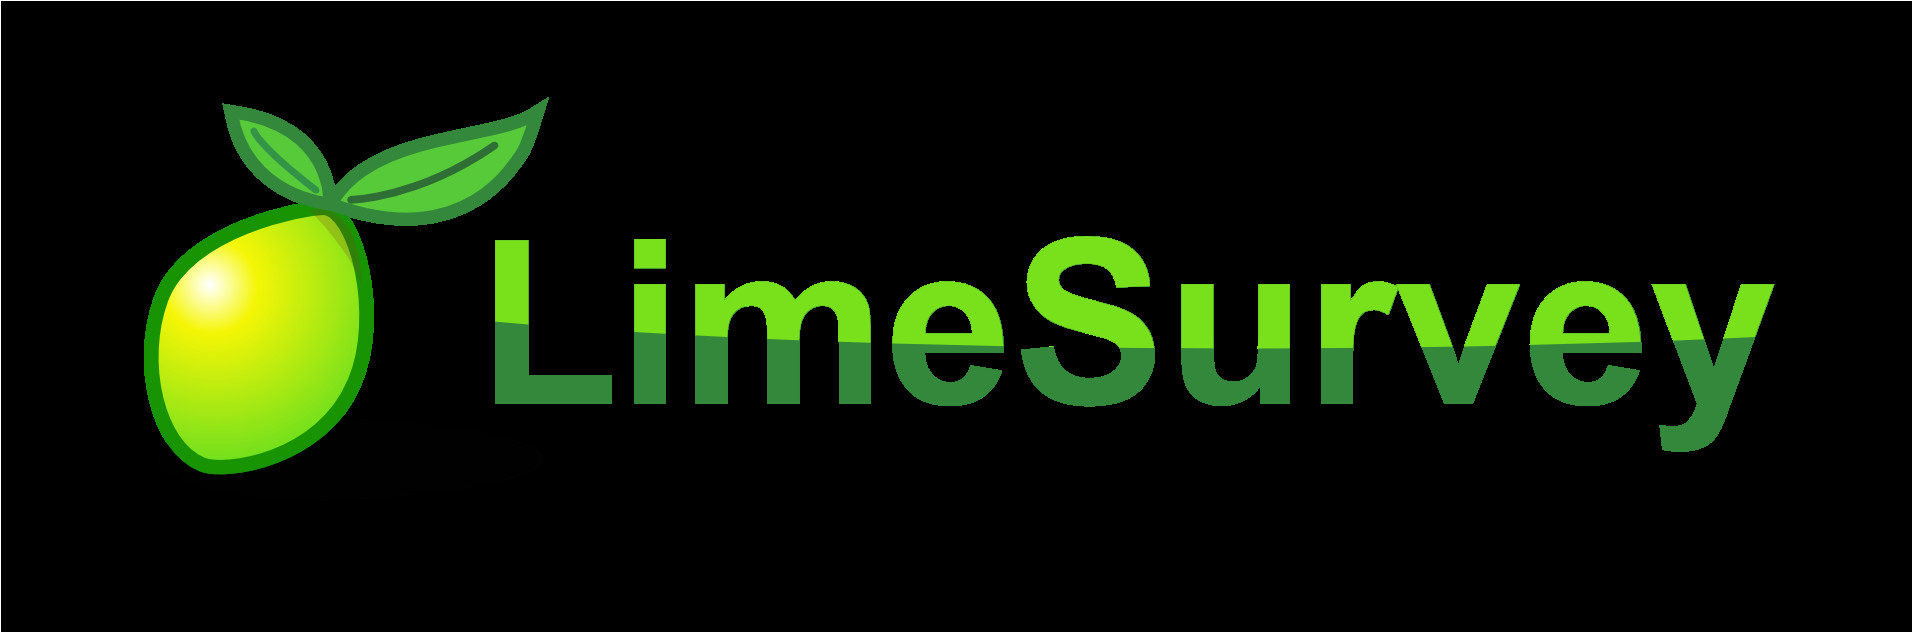 Free Limesurvey Templates Limesurvey Free Alternative to Surveymonkey Anytime